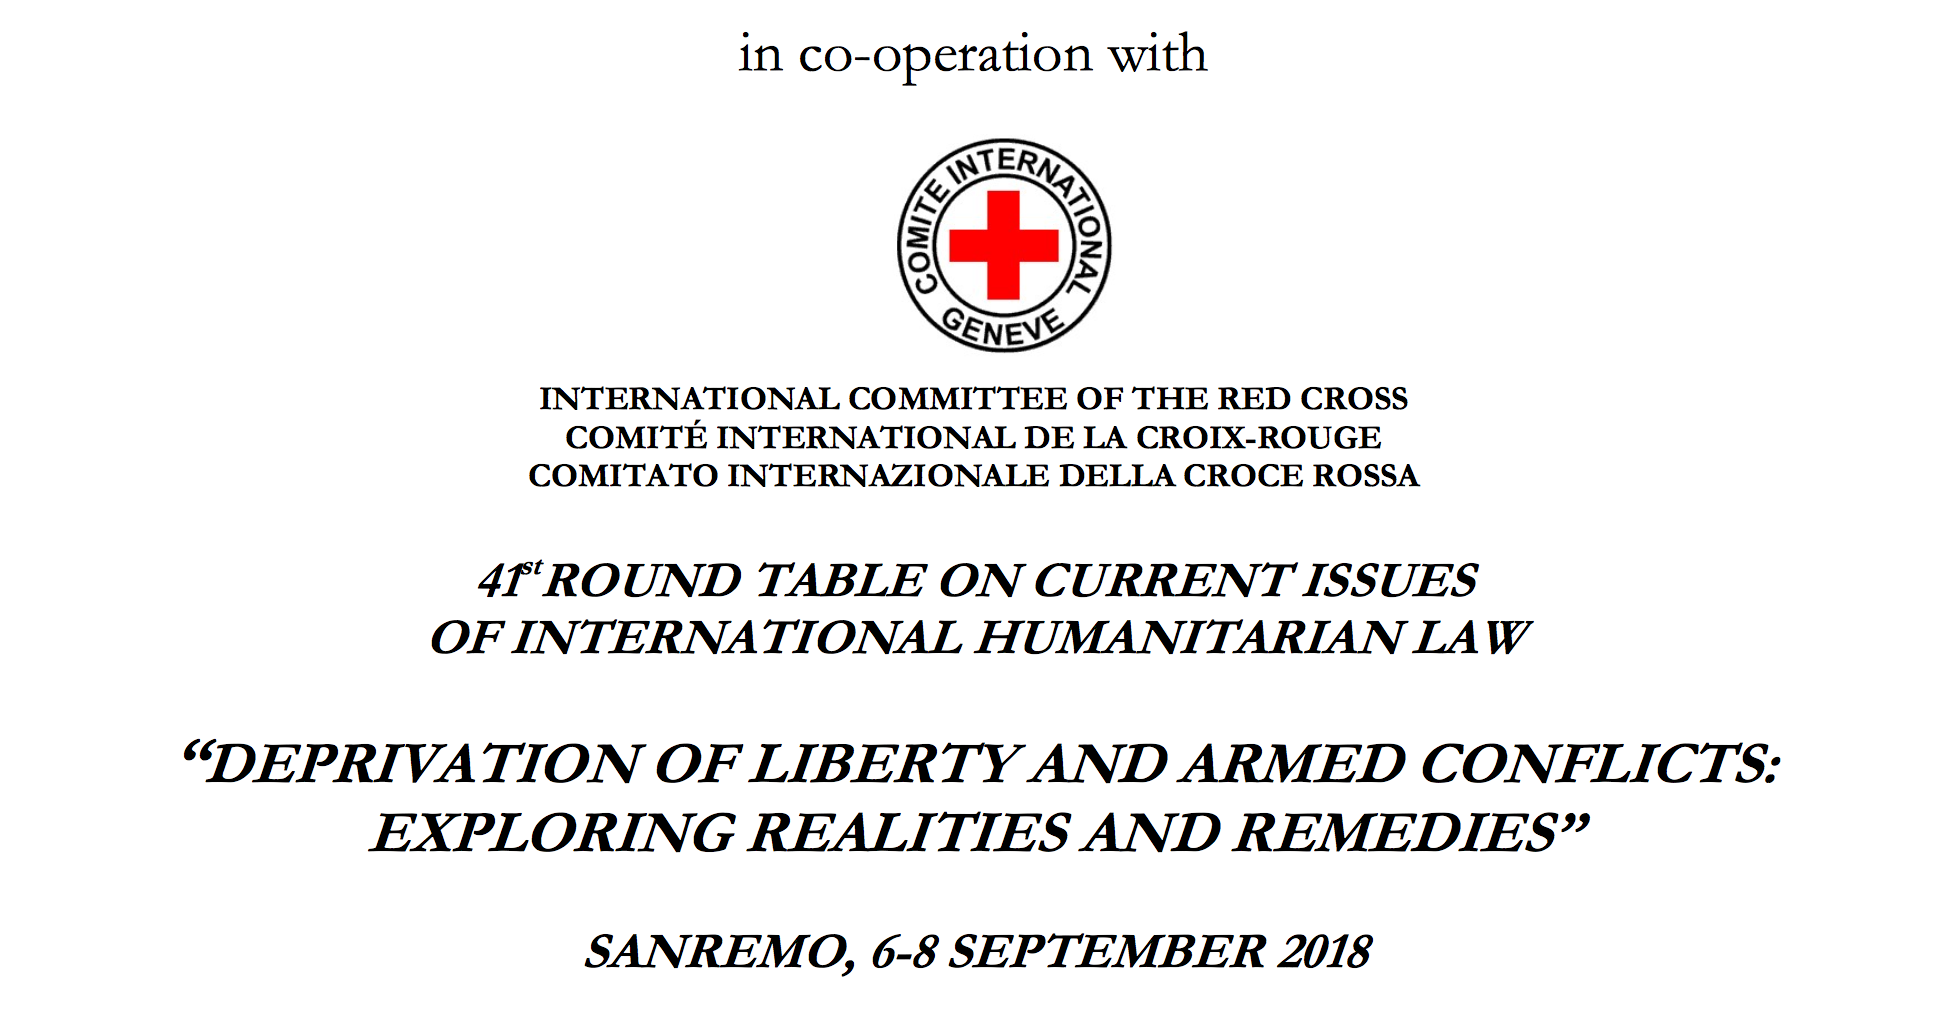 """DEPRIVATION OF LIBERTY AND ARMED CONFLICTS: EXPLORING REALITIES AND REMEDIES""""  SANREMO, 6–8 SEPTEMBER 2018 — INTERNATIONAL INSTITUTE OF HUMANITARIAN LAW"""